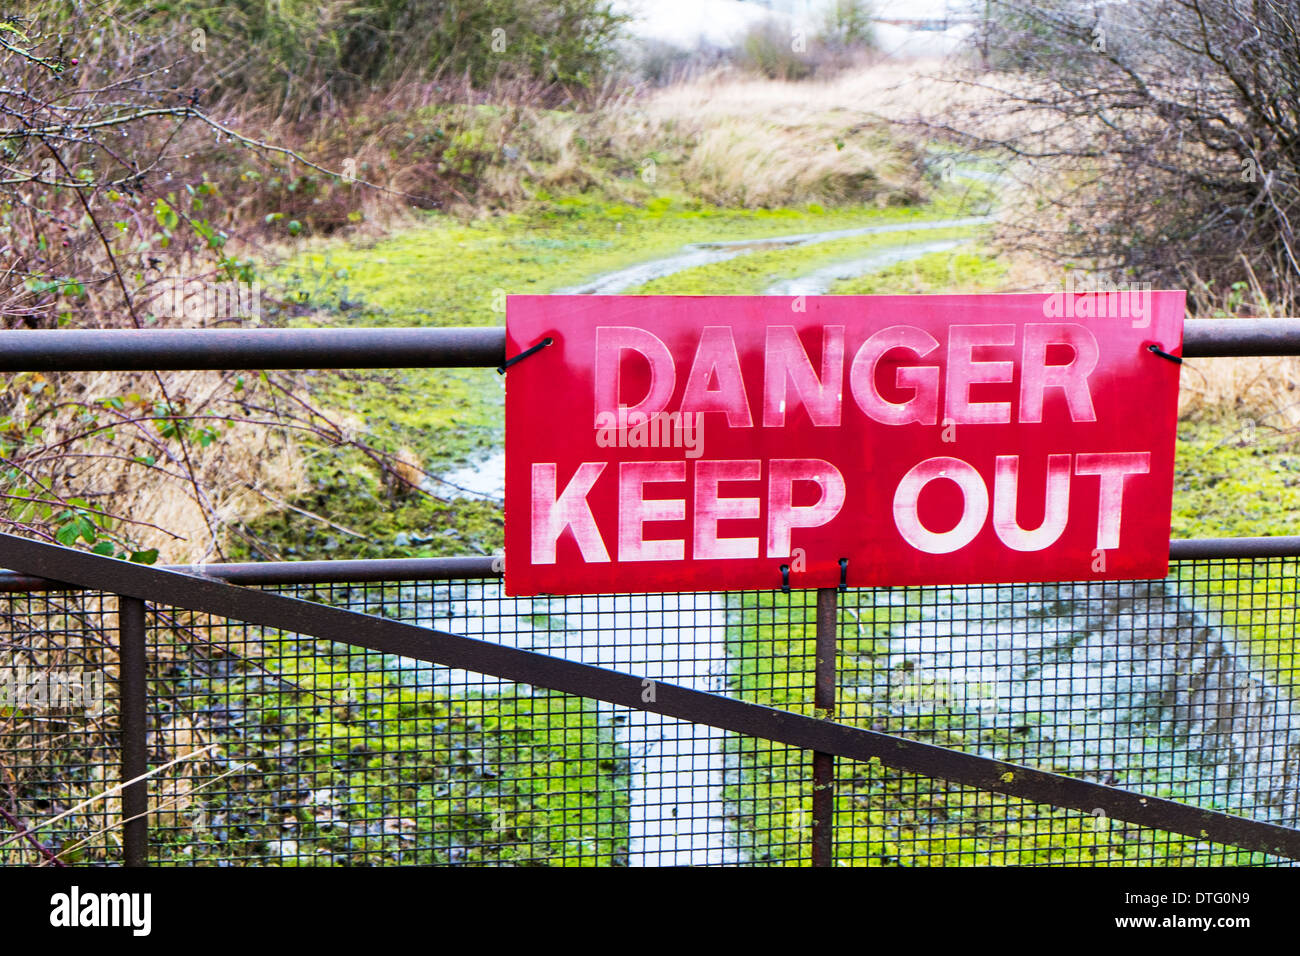 Danger Keep Out sign red warning on gate safety warn protect protection - Stock Image